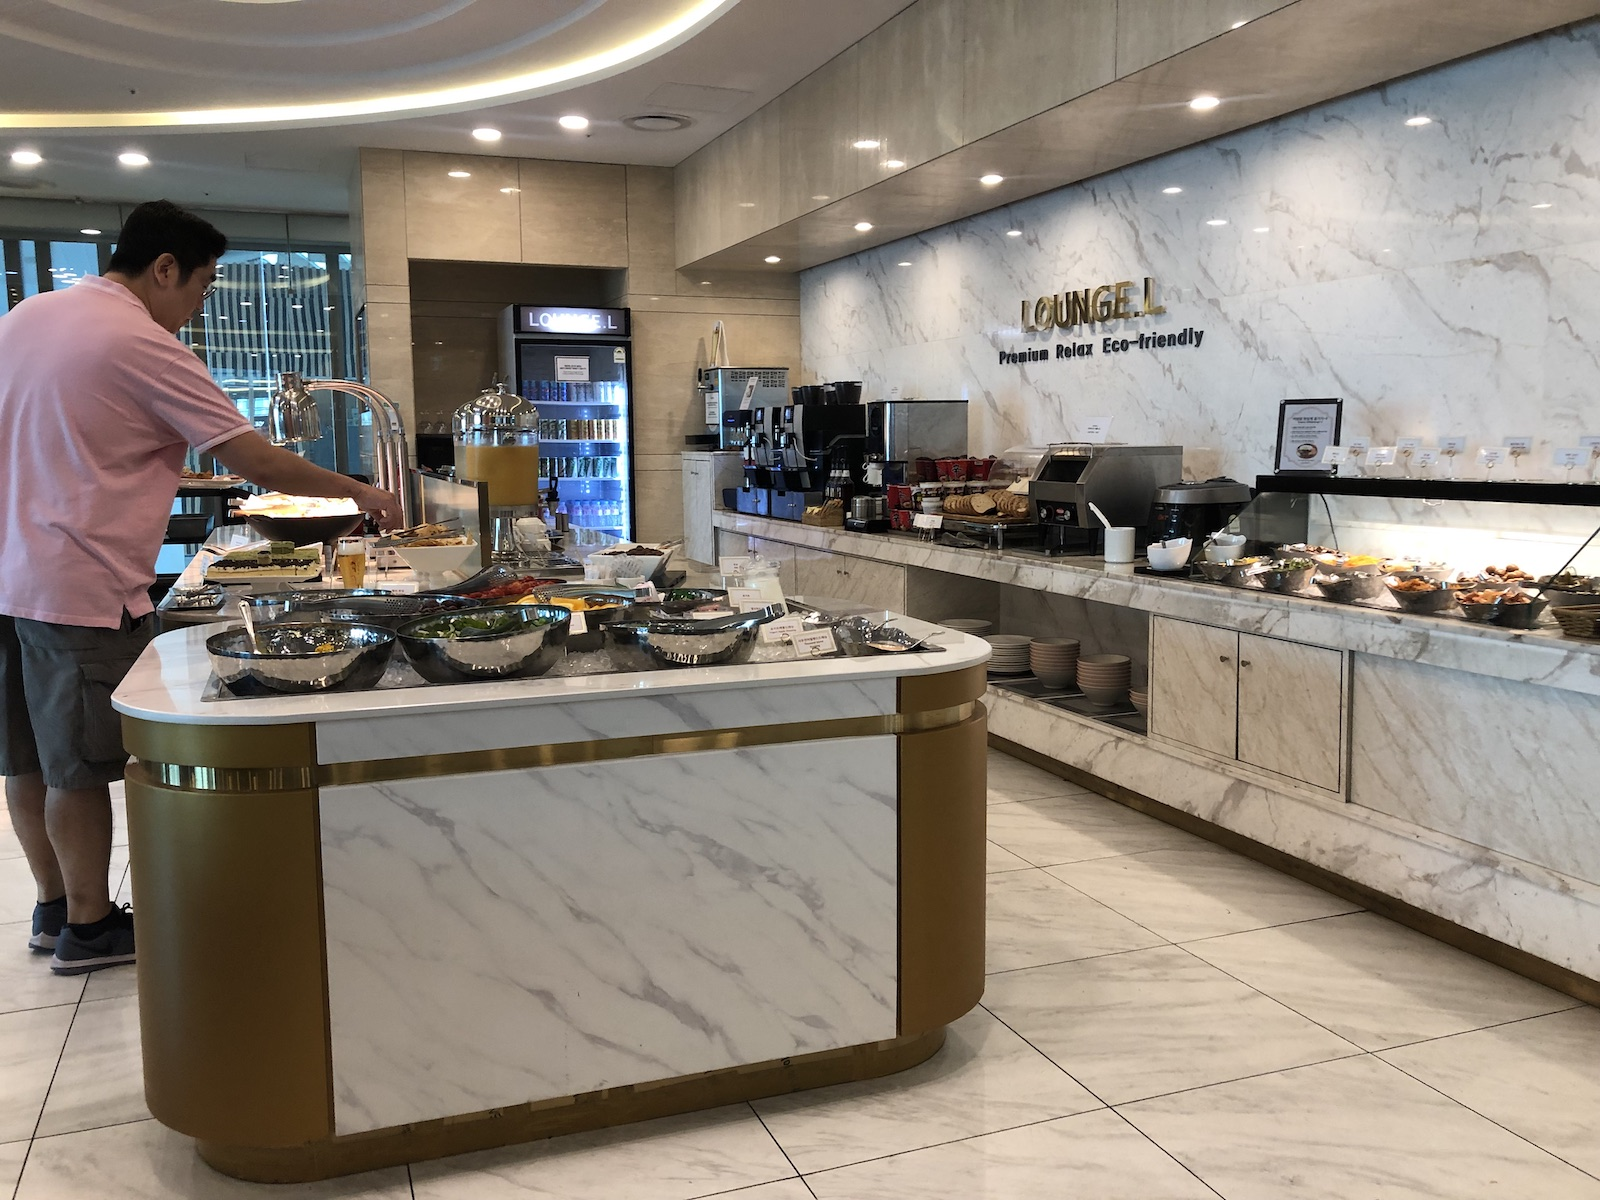 South Korea Seoul Airport Lounge L Dining Choices